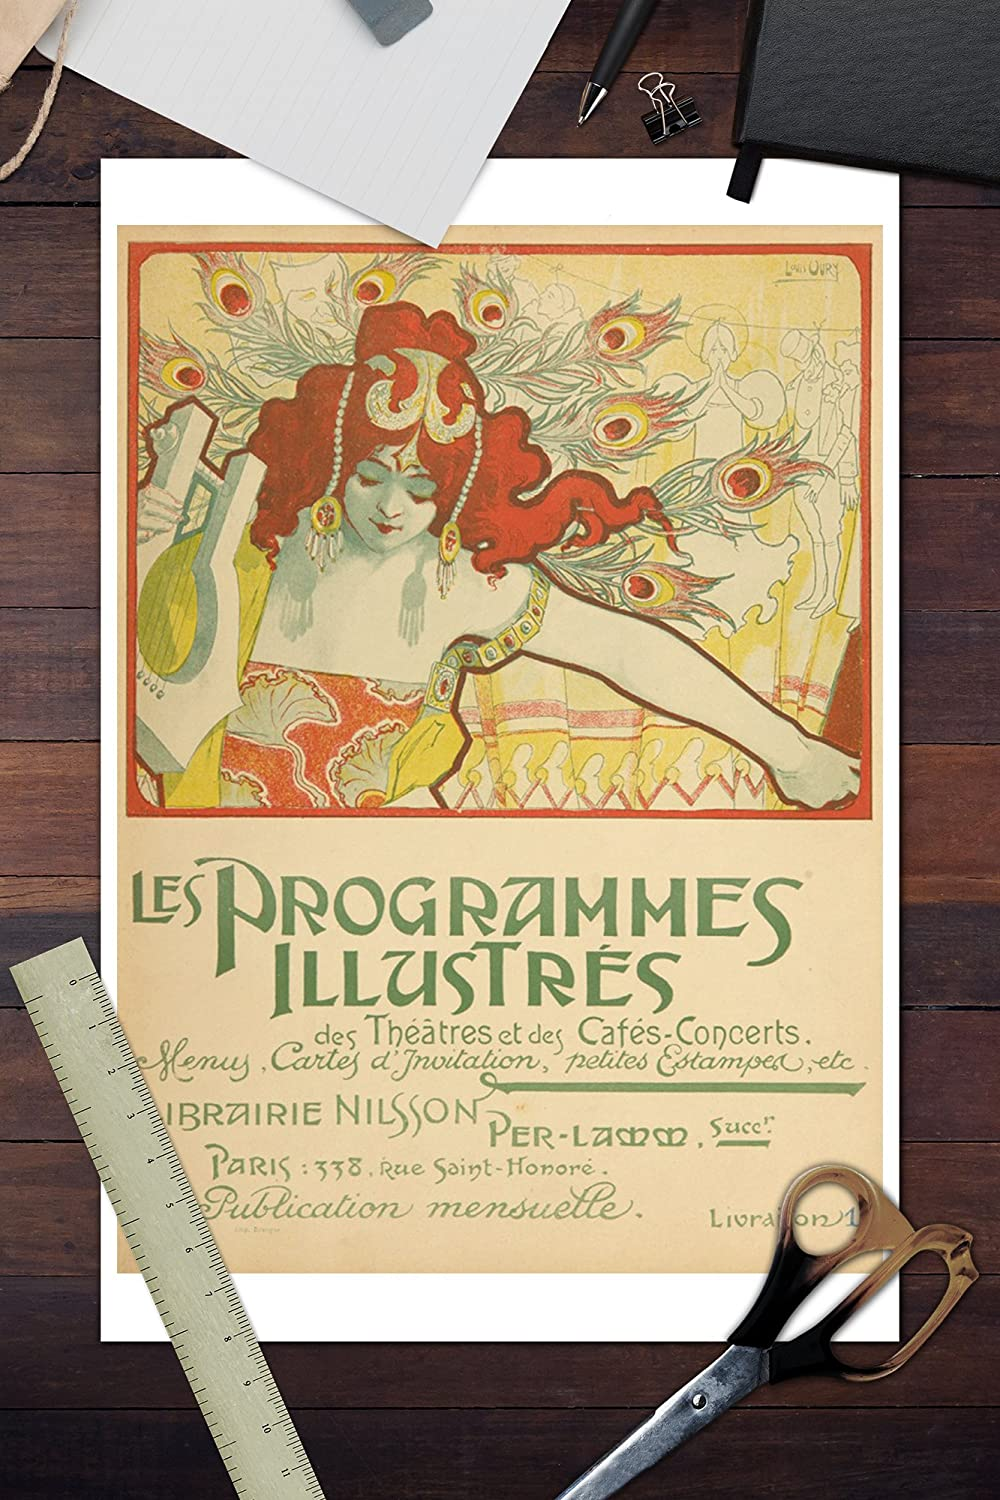 Amazon.com: Les Programmes Illustres, by Ernest Maindron Vintage Poster France c. 1897 (36x54 Giclee Gallery Print, Wall Decor Travel Poster): Arts, ...